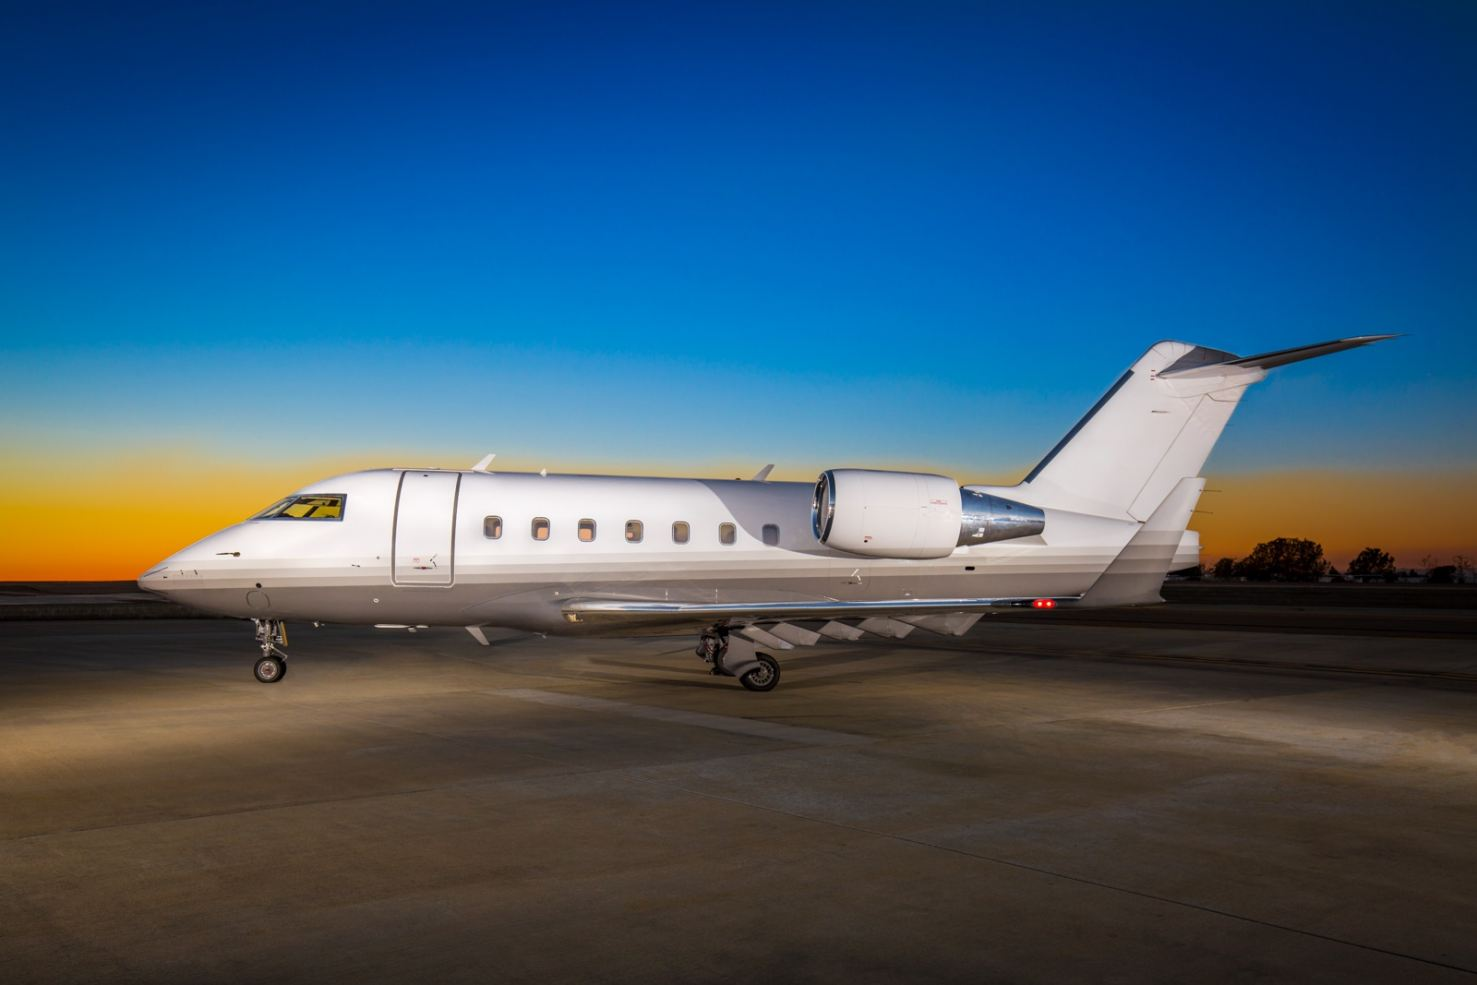 Schubach Aviation's New Bombardier Challenger 601-3R